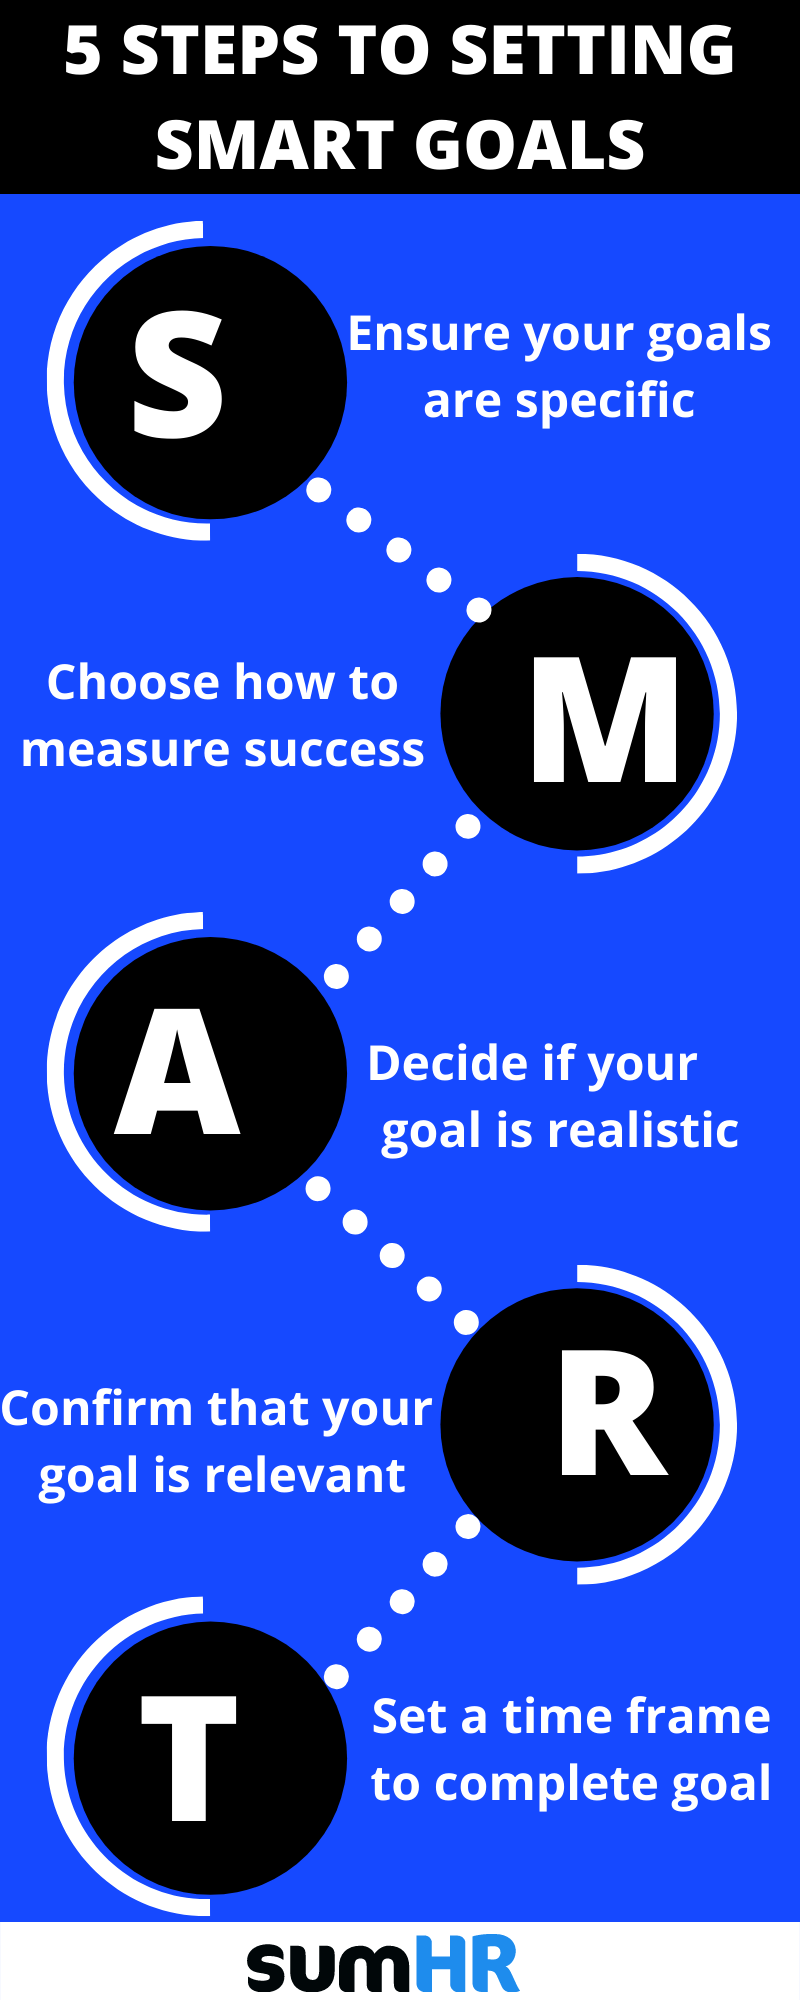 5 STEPS TO SETTING SMART GOALS